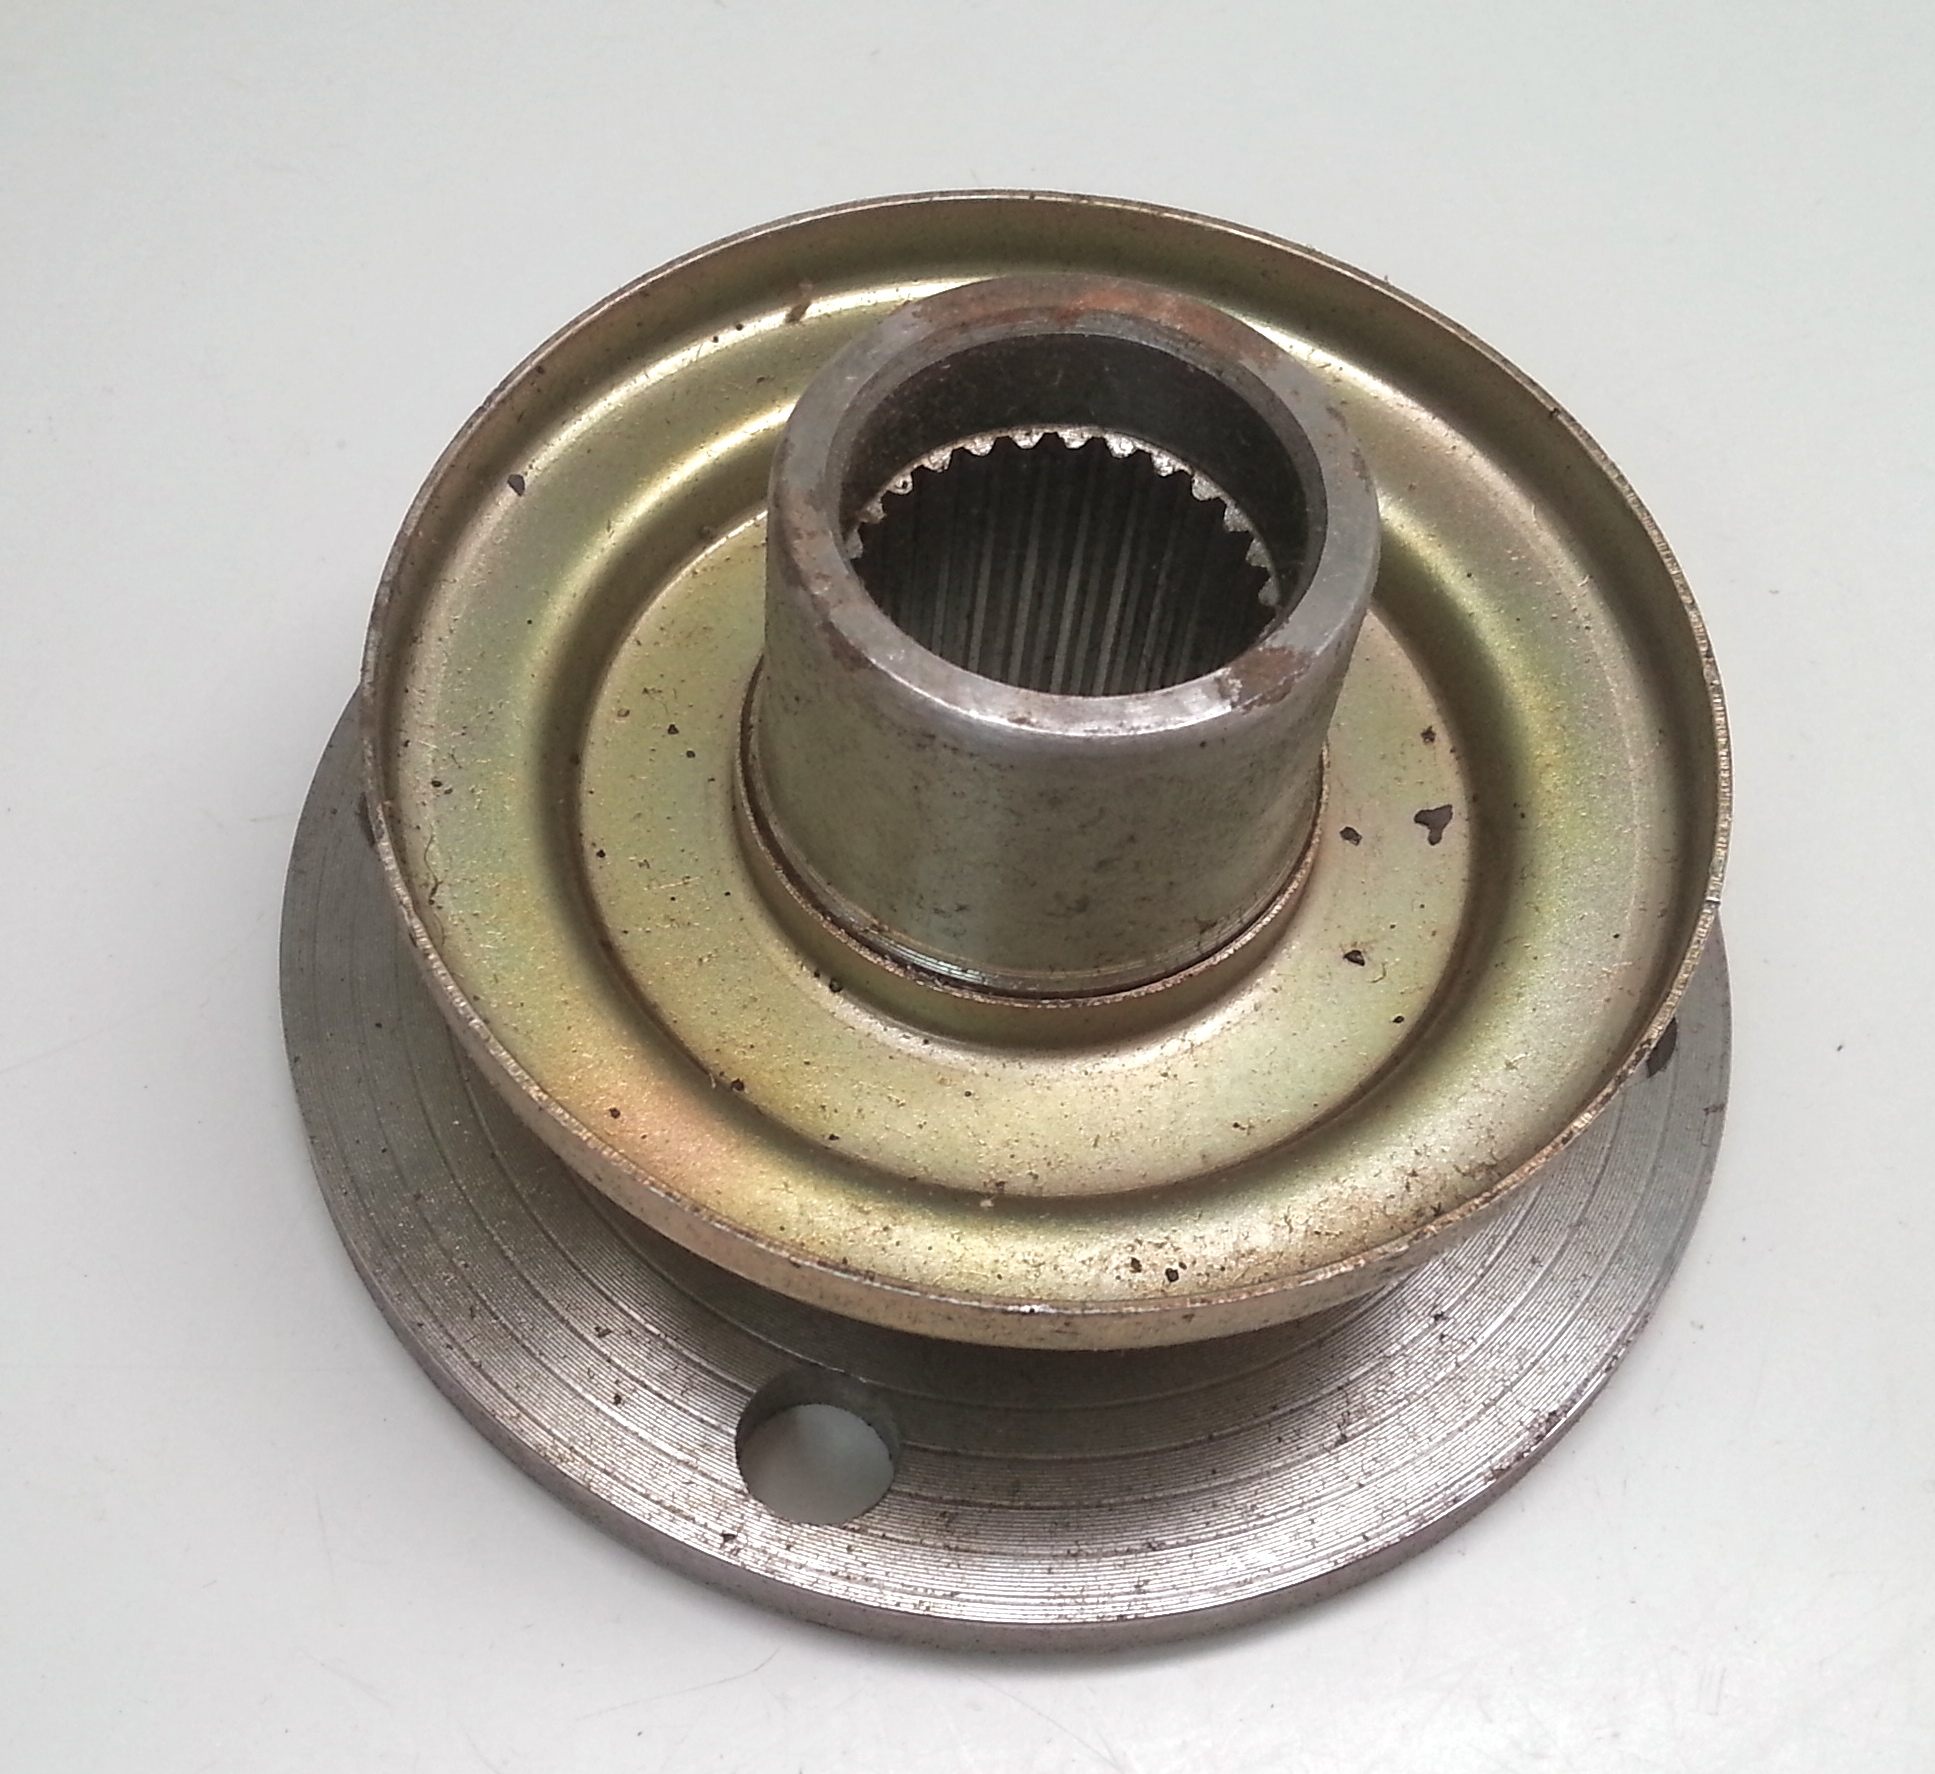 Made In Japan Cruiserpartsnet Toyota Landcruiser Parts 1973 Land Cruiser Rear Drive Pinion Companion Flange For 78 84 40 55 Series